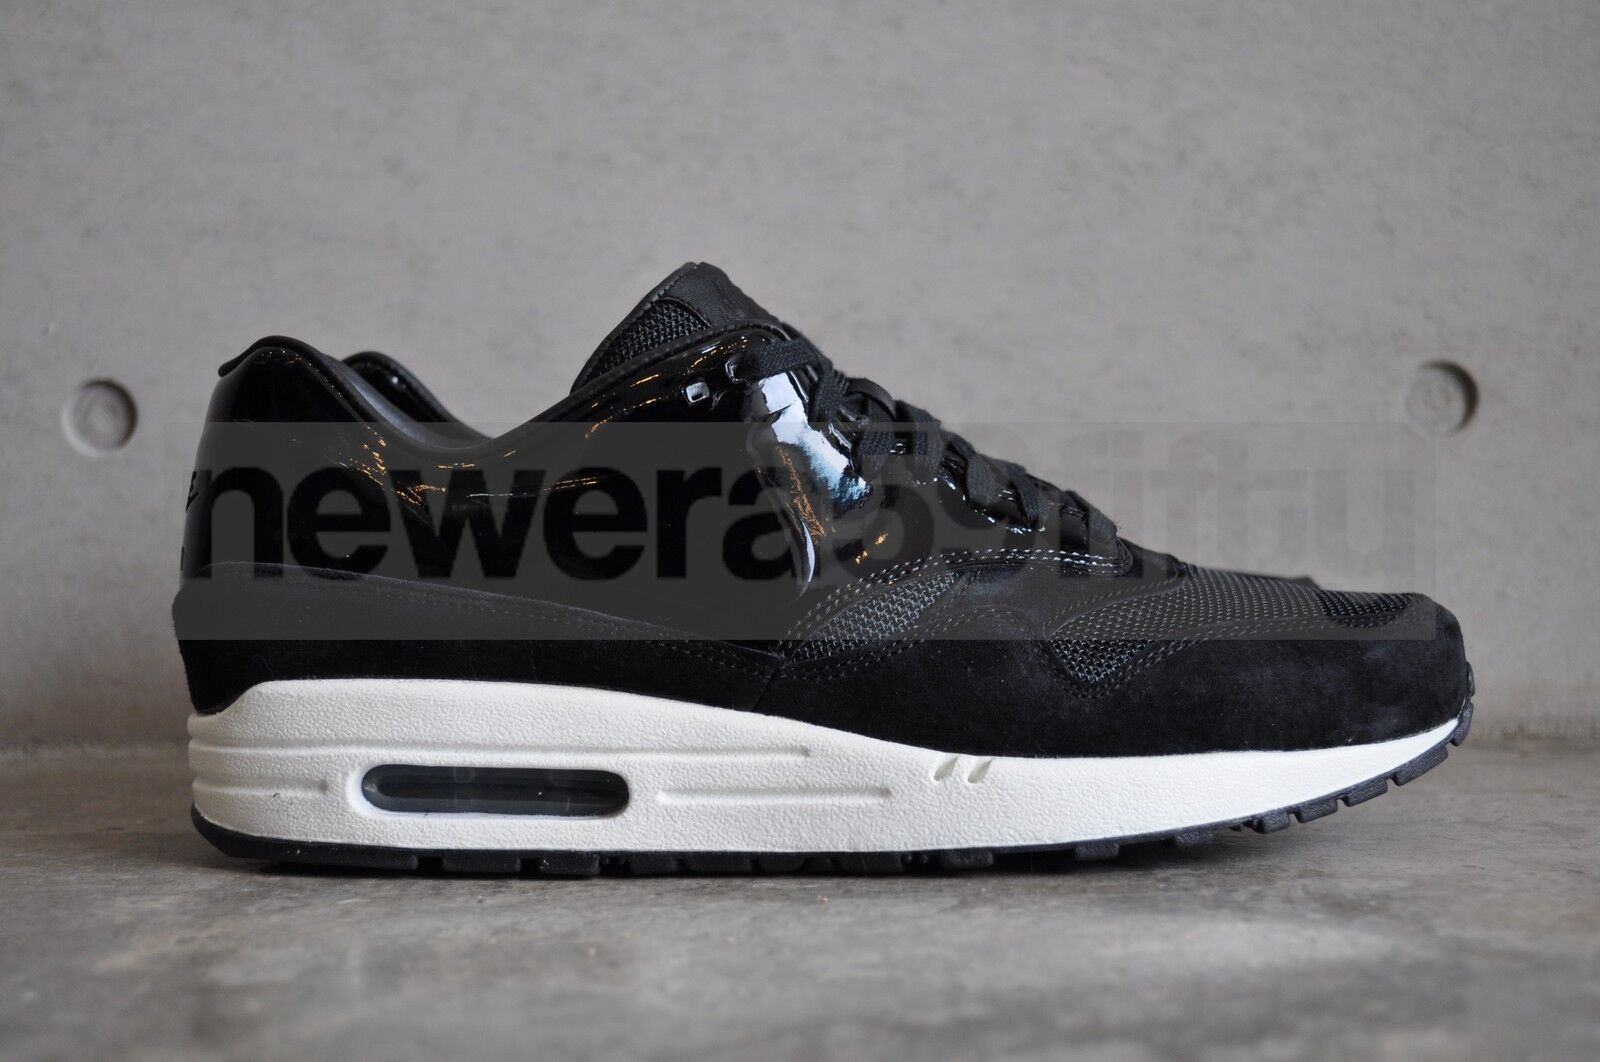 Nike Womens Tech Air Max 1 VT Vac Tech Womens QS - Black/Sail-White 83243a